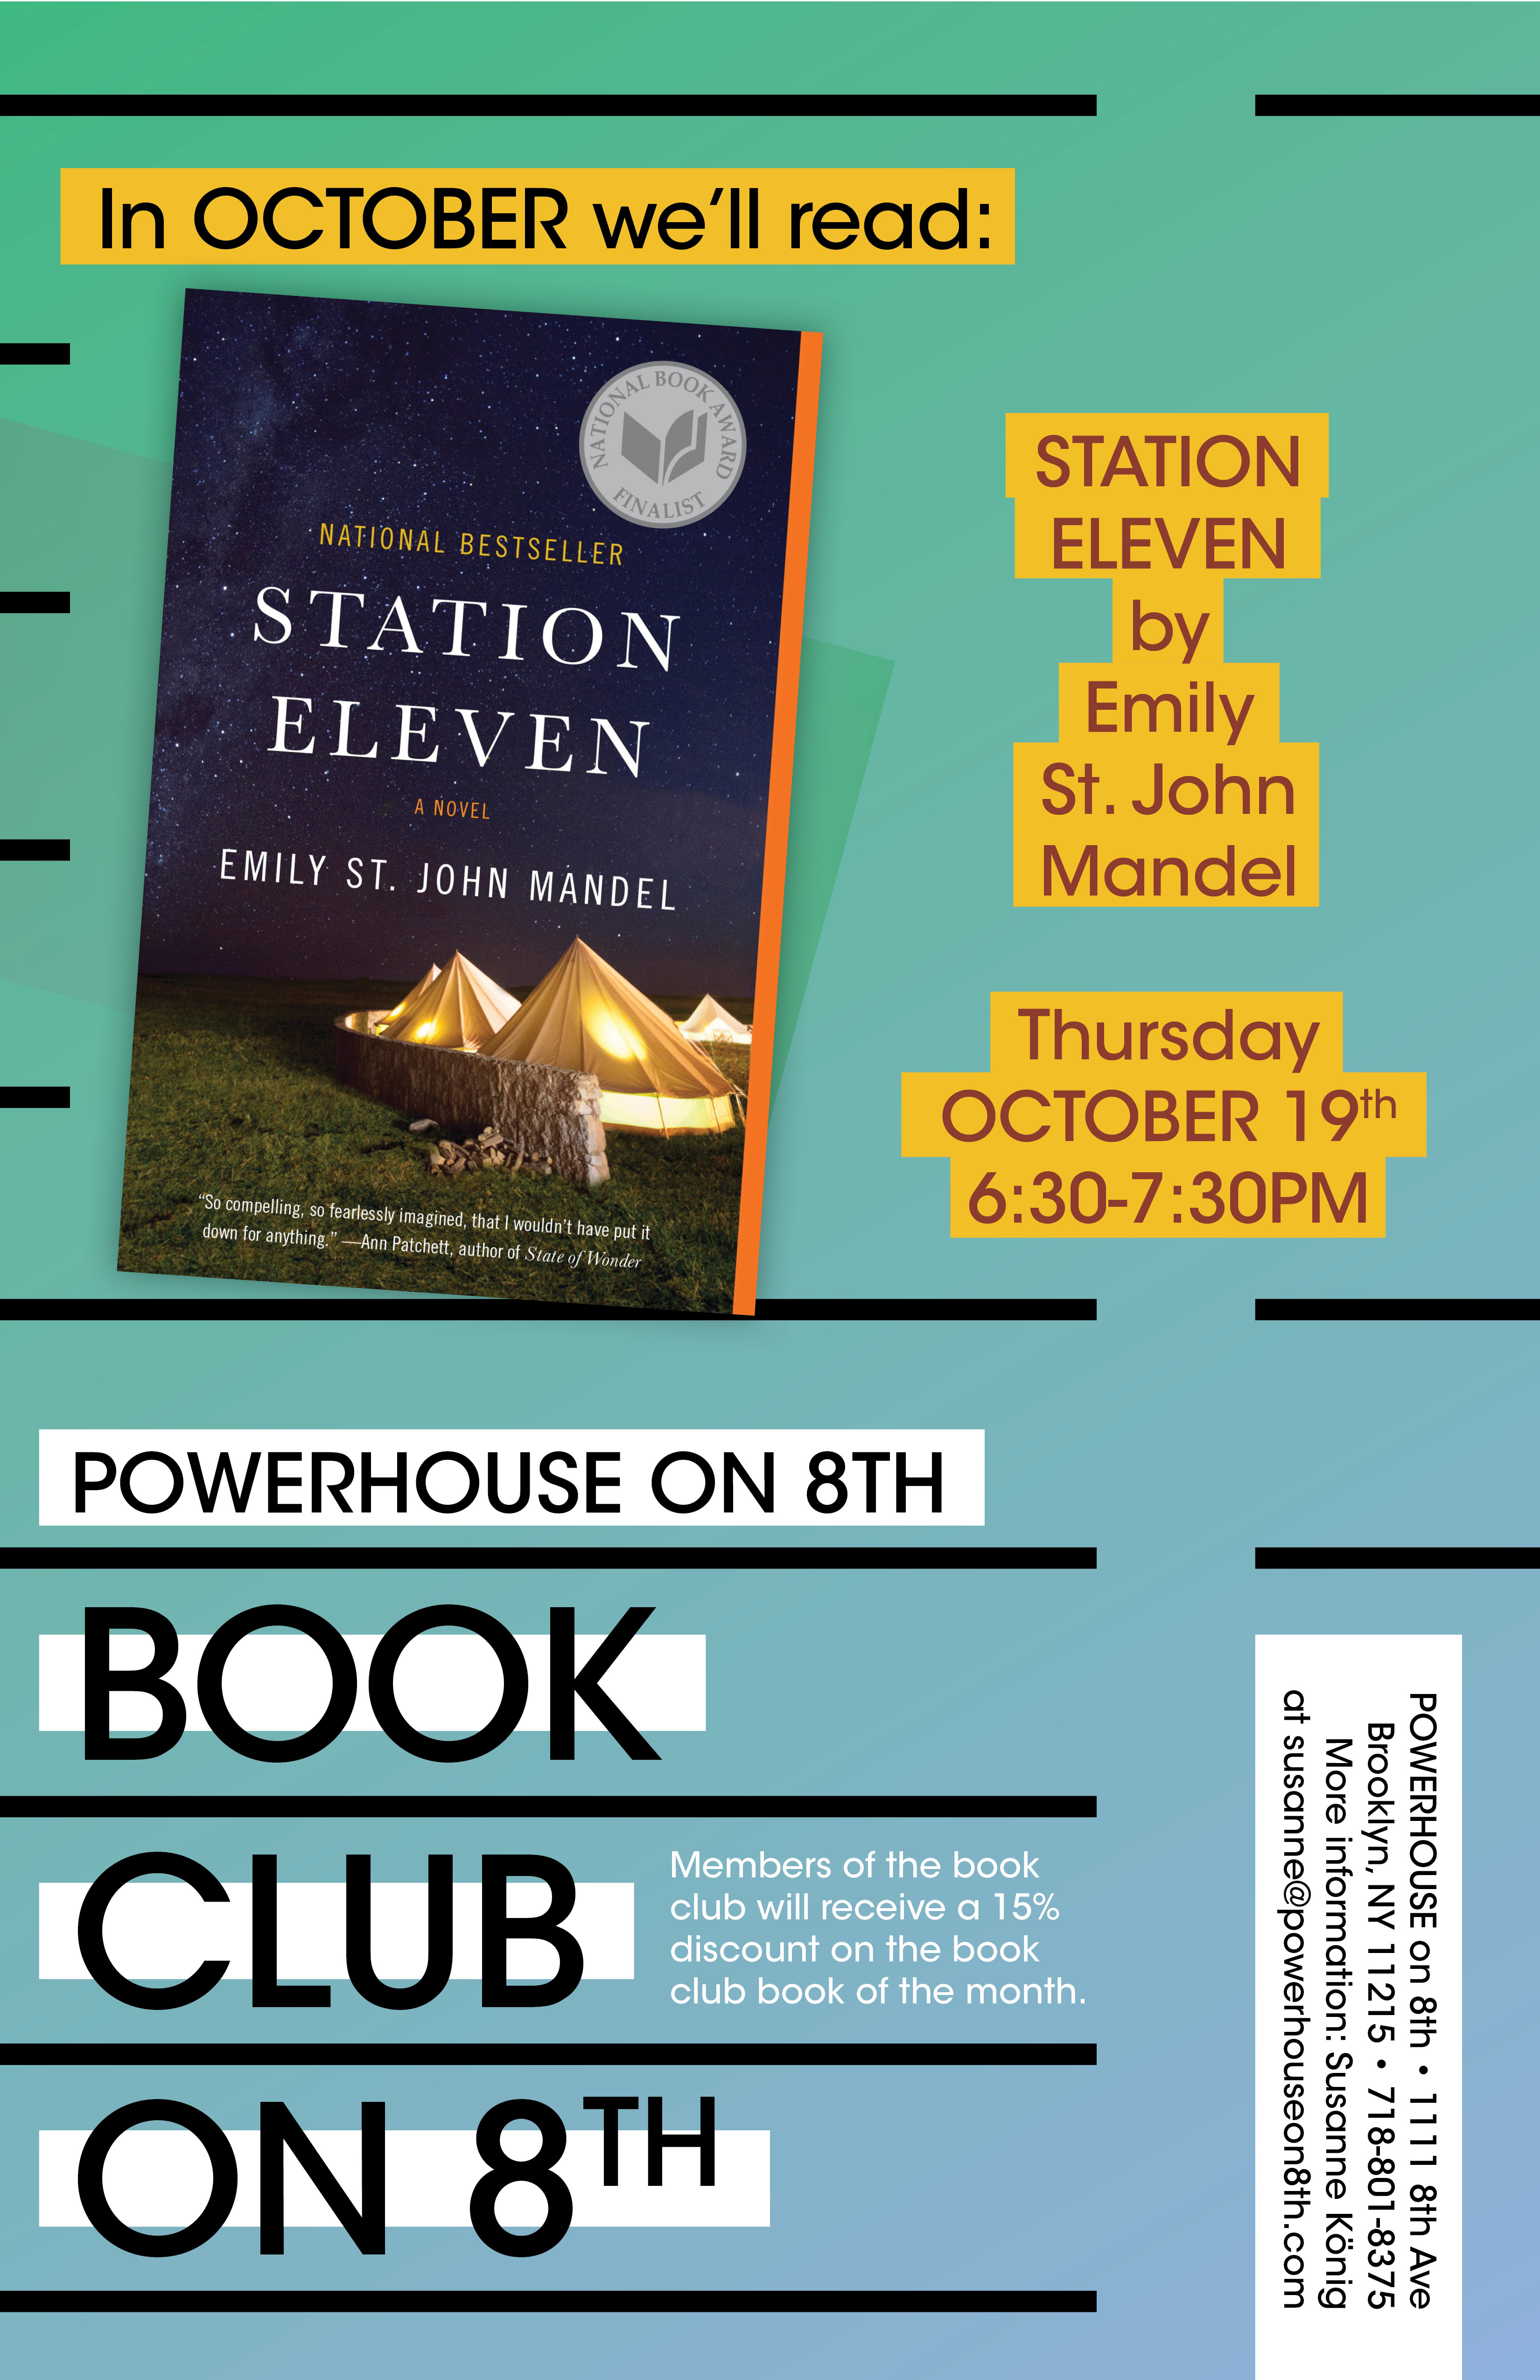 Book Club on 8th: Station Eleven by Emily St. John Mandel